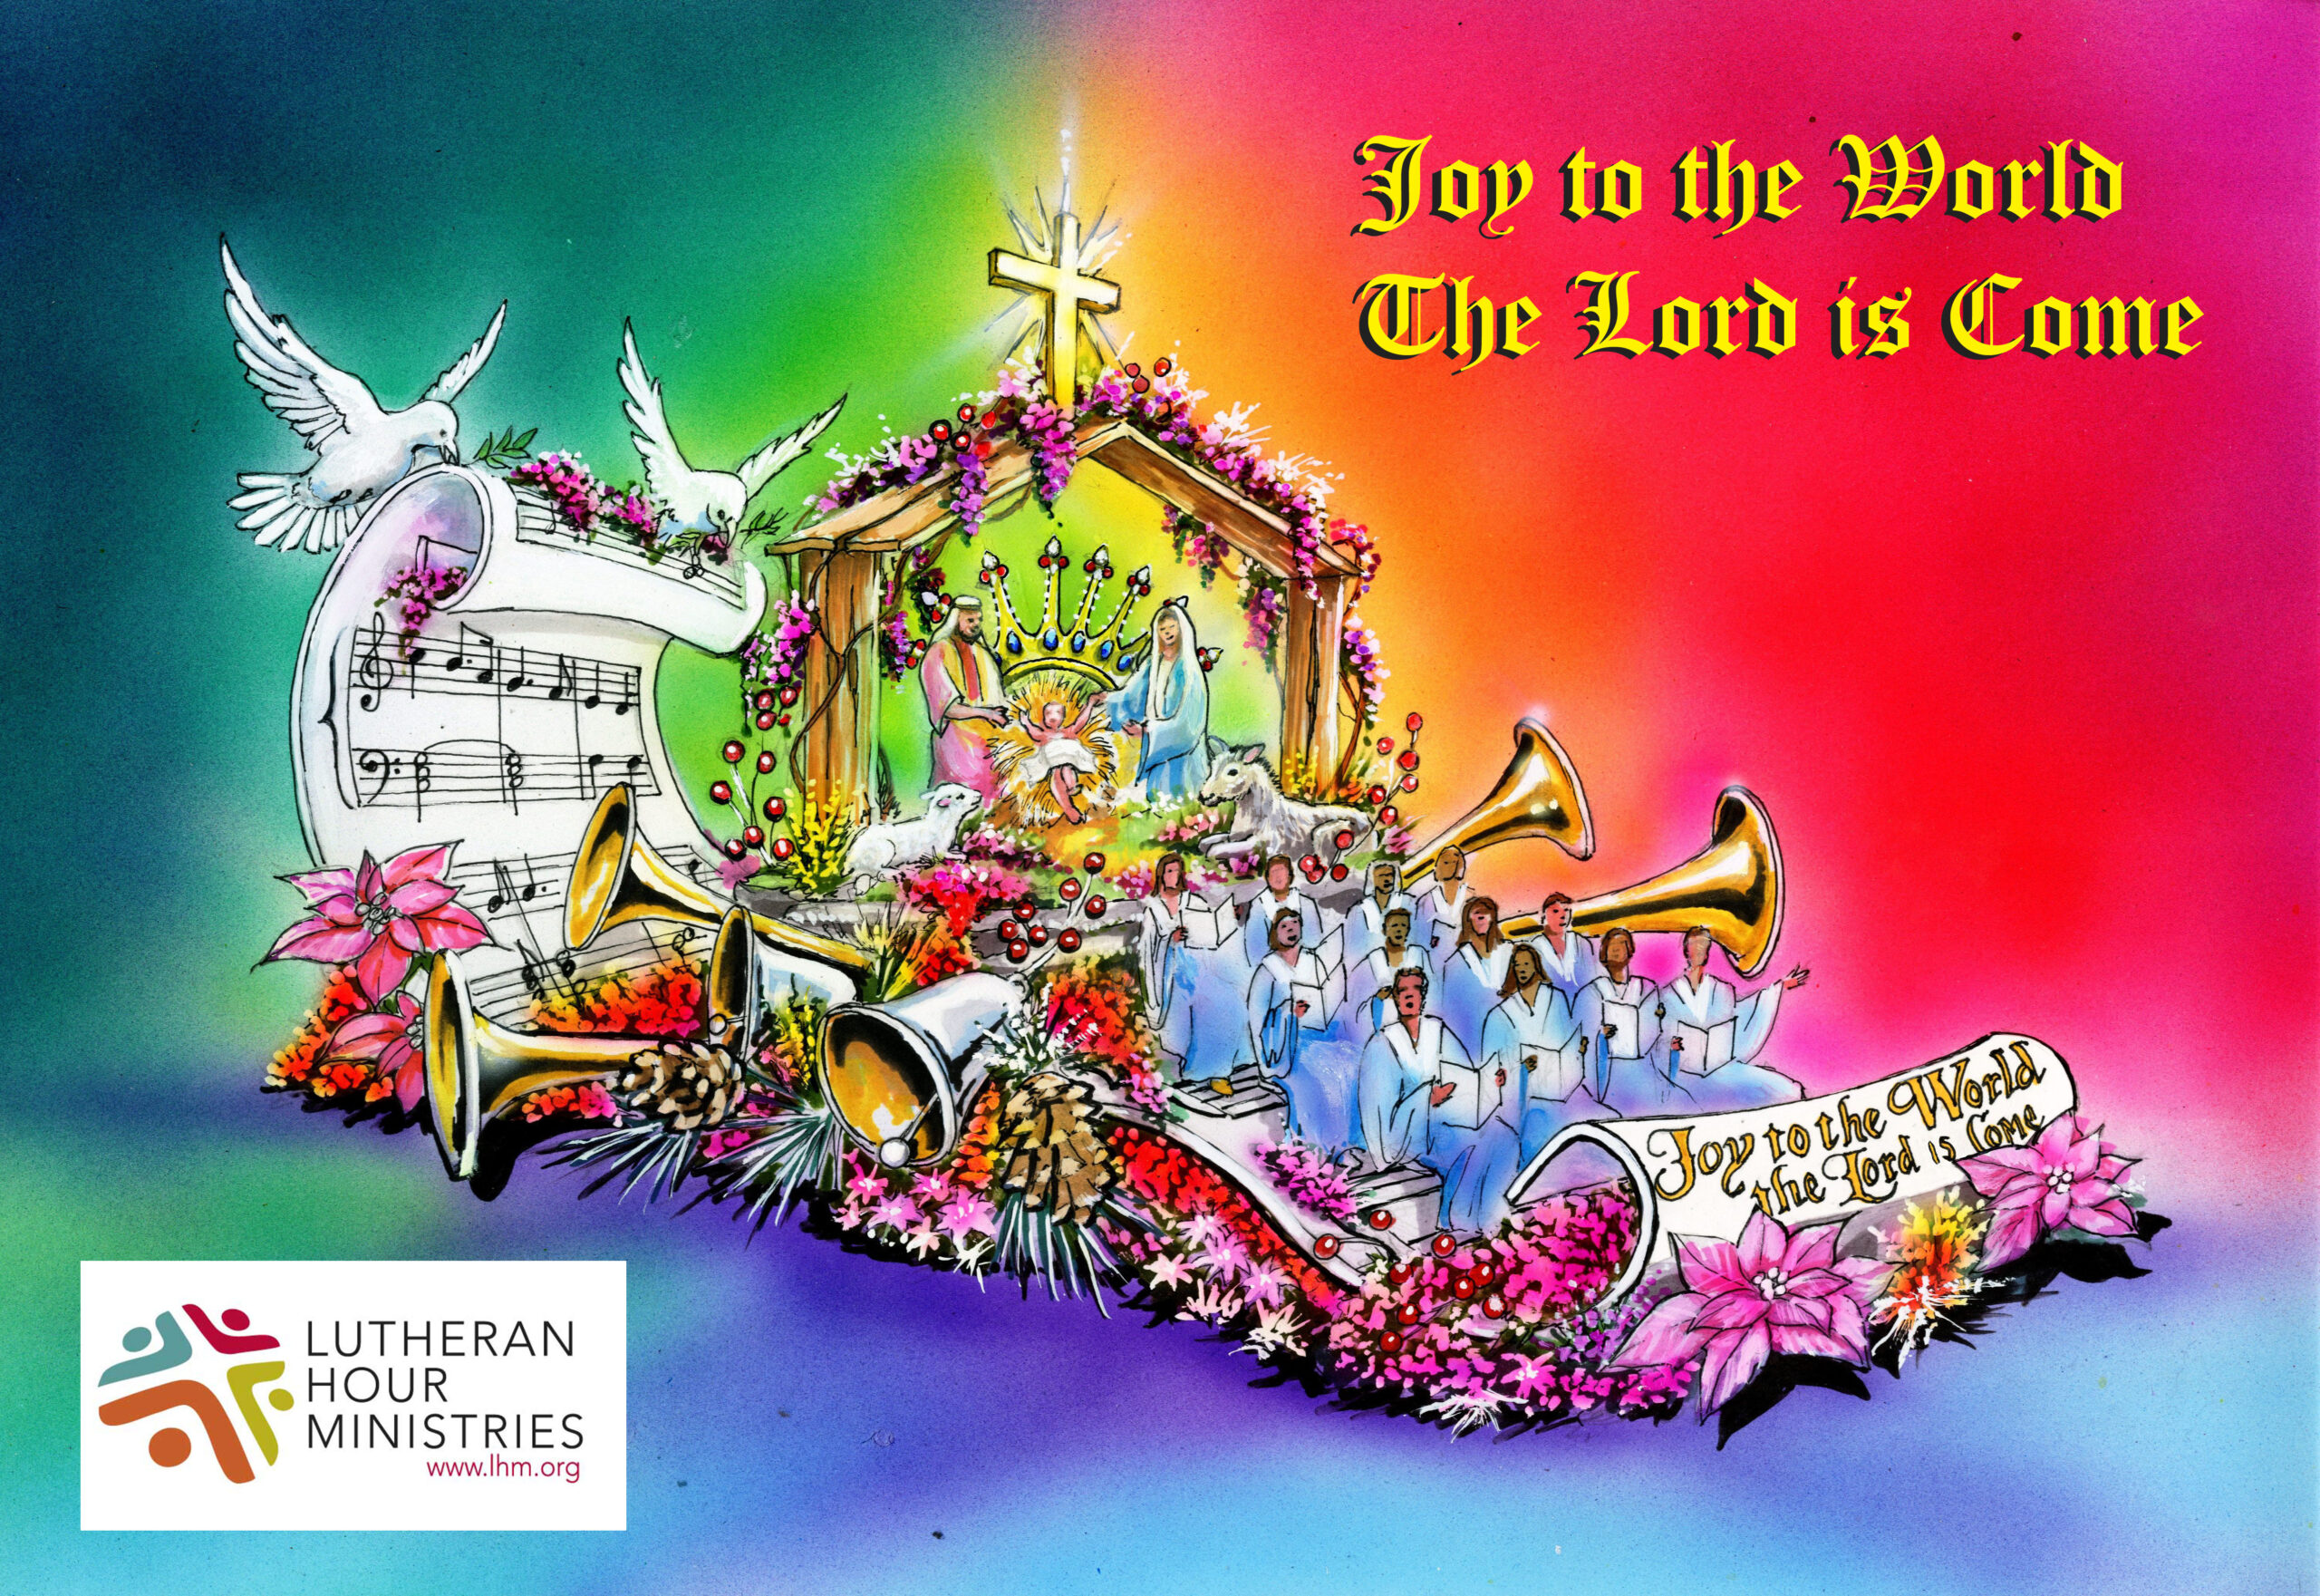 Rendering of the Lutheran Hour Ministries float in the 2019 Rose Parade.